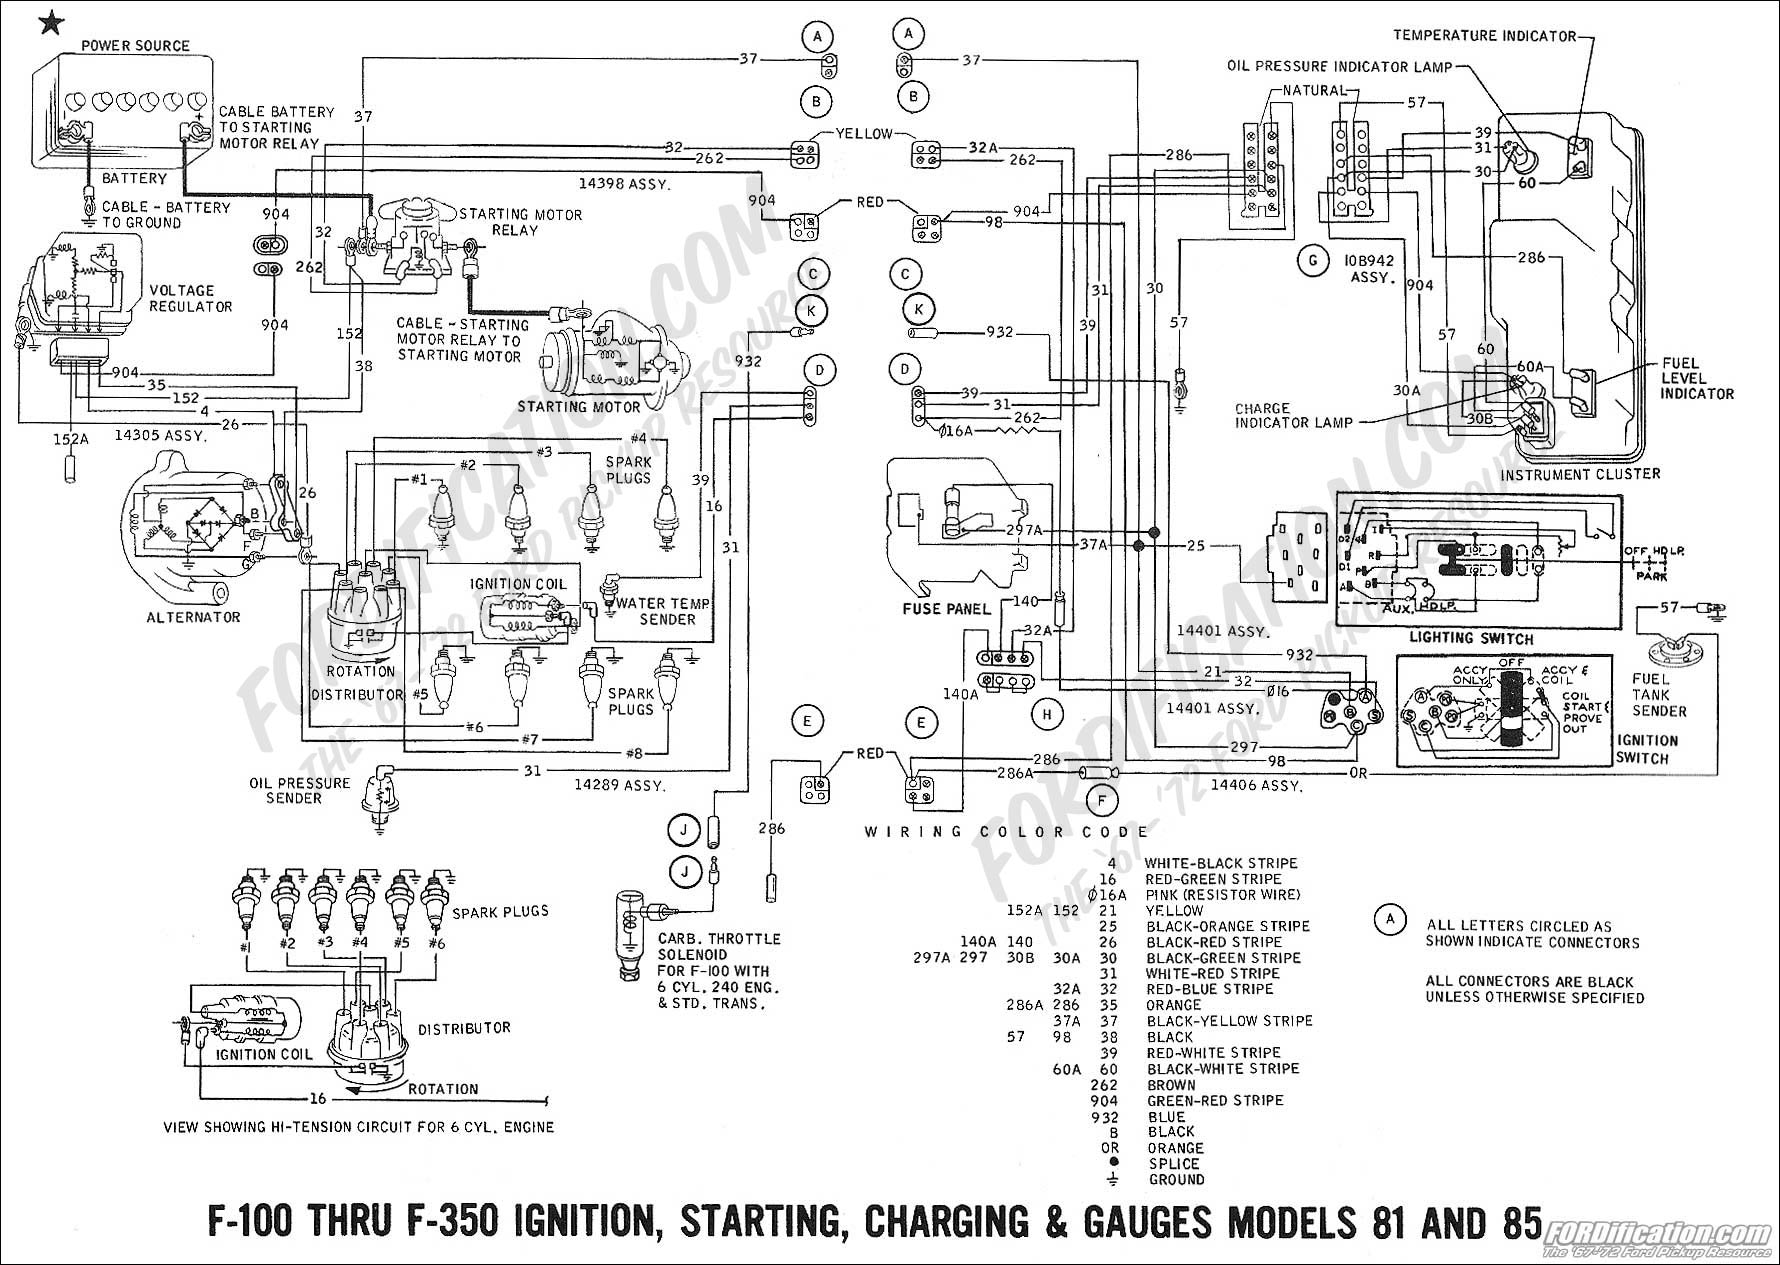 ford pinto starter wiring diagram wiring diagram rh w2 gensignalen nl 80 ford  pinto wiring-diagram 1976 ford pinto alternator wiring diagram